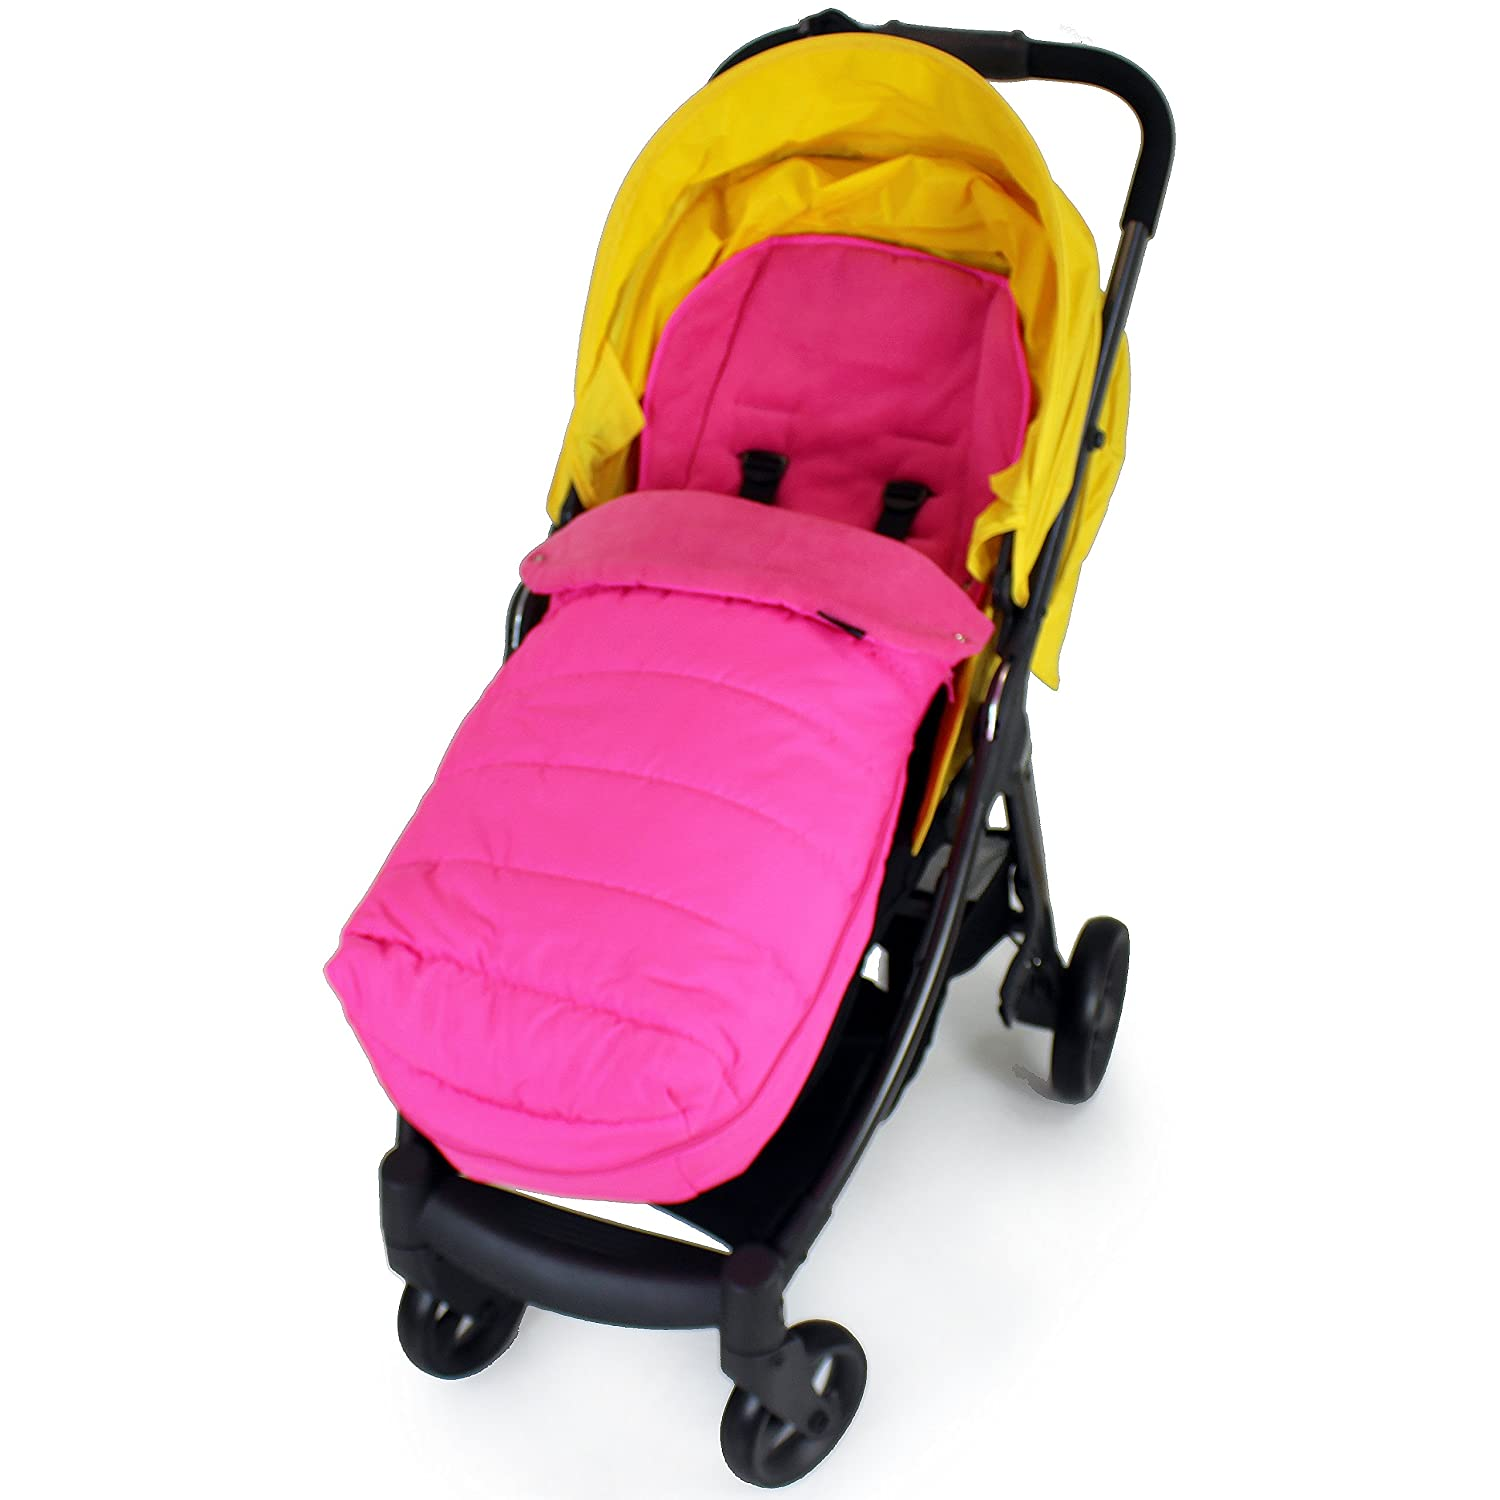 XXL Large Luxury Foot-muff And Liner For Mamas And Papas Armadillo - Raspberry (Pink) Baby Travel® BtMcFmMPPink